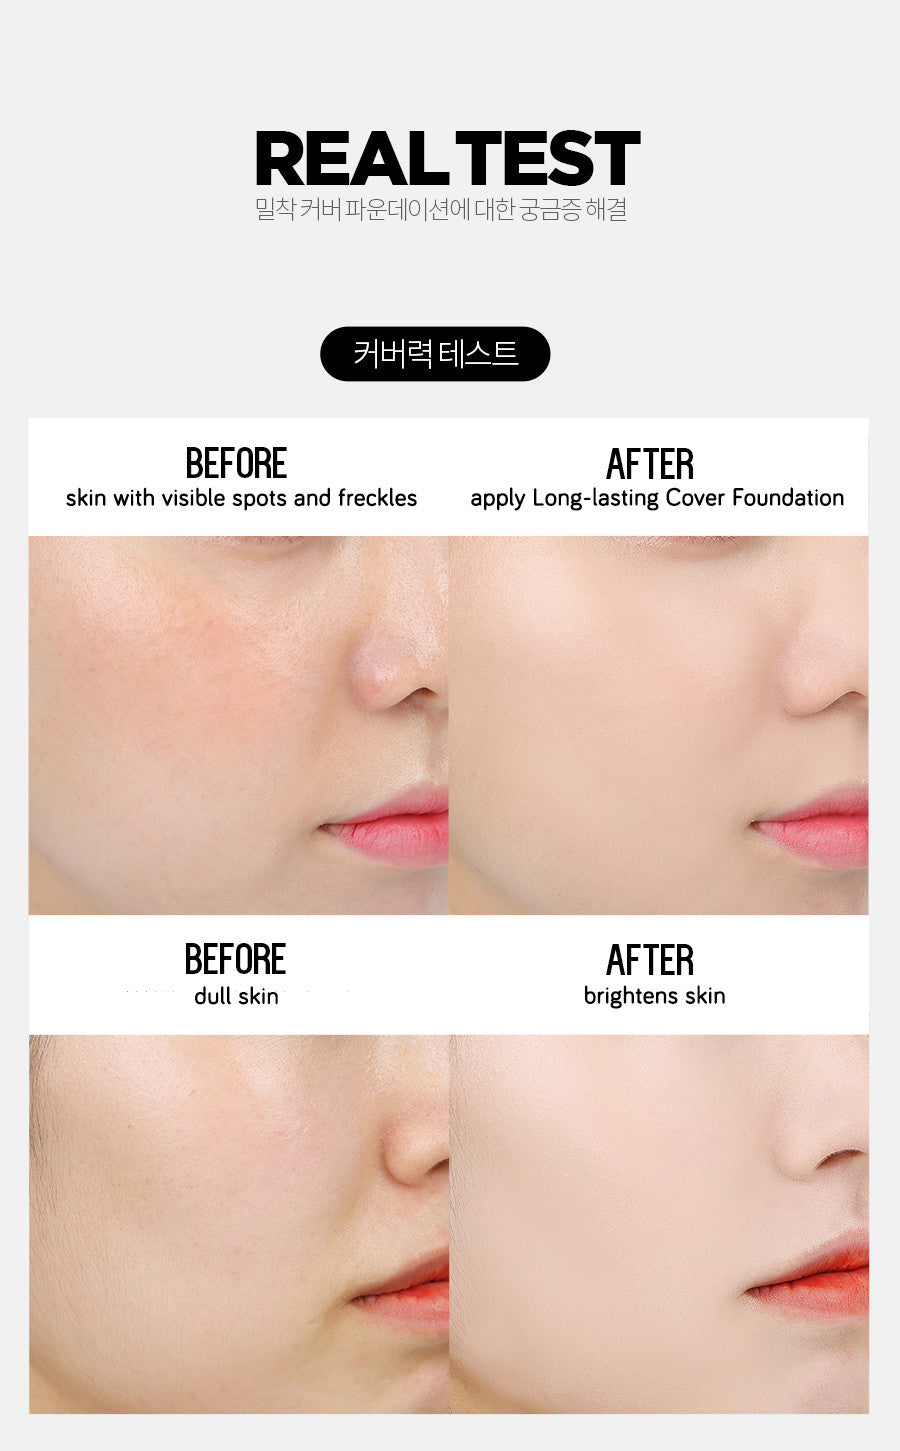 Before and after comparison of using the Long Lasting Cover Foundation